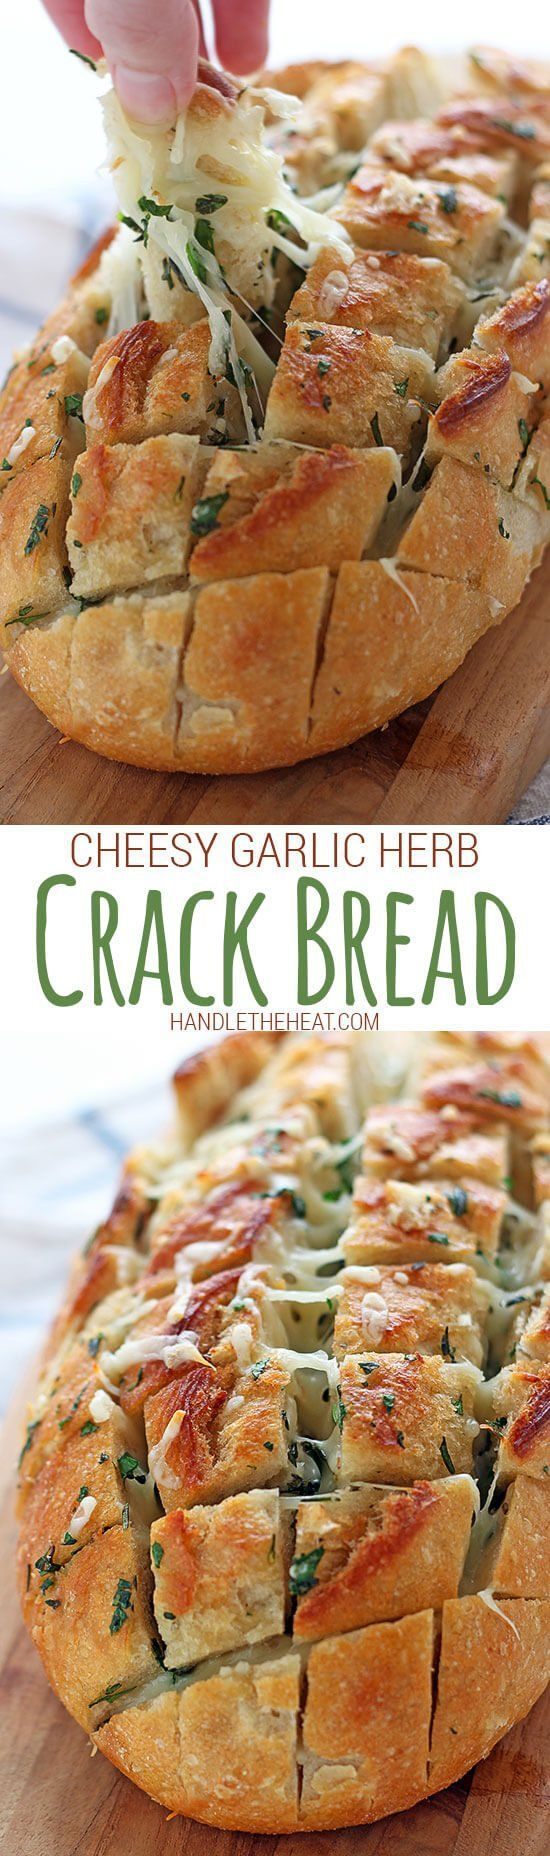 Crack bread, Breads and Garlic on Pinterest